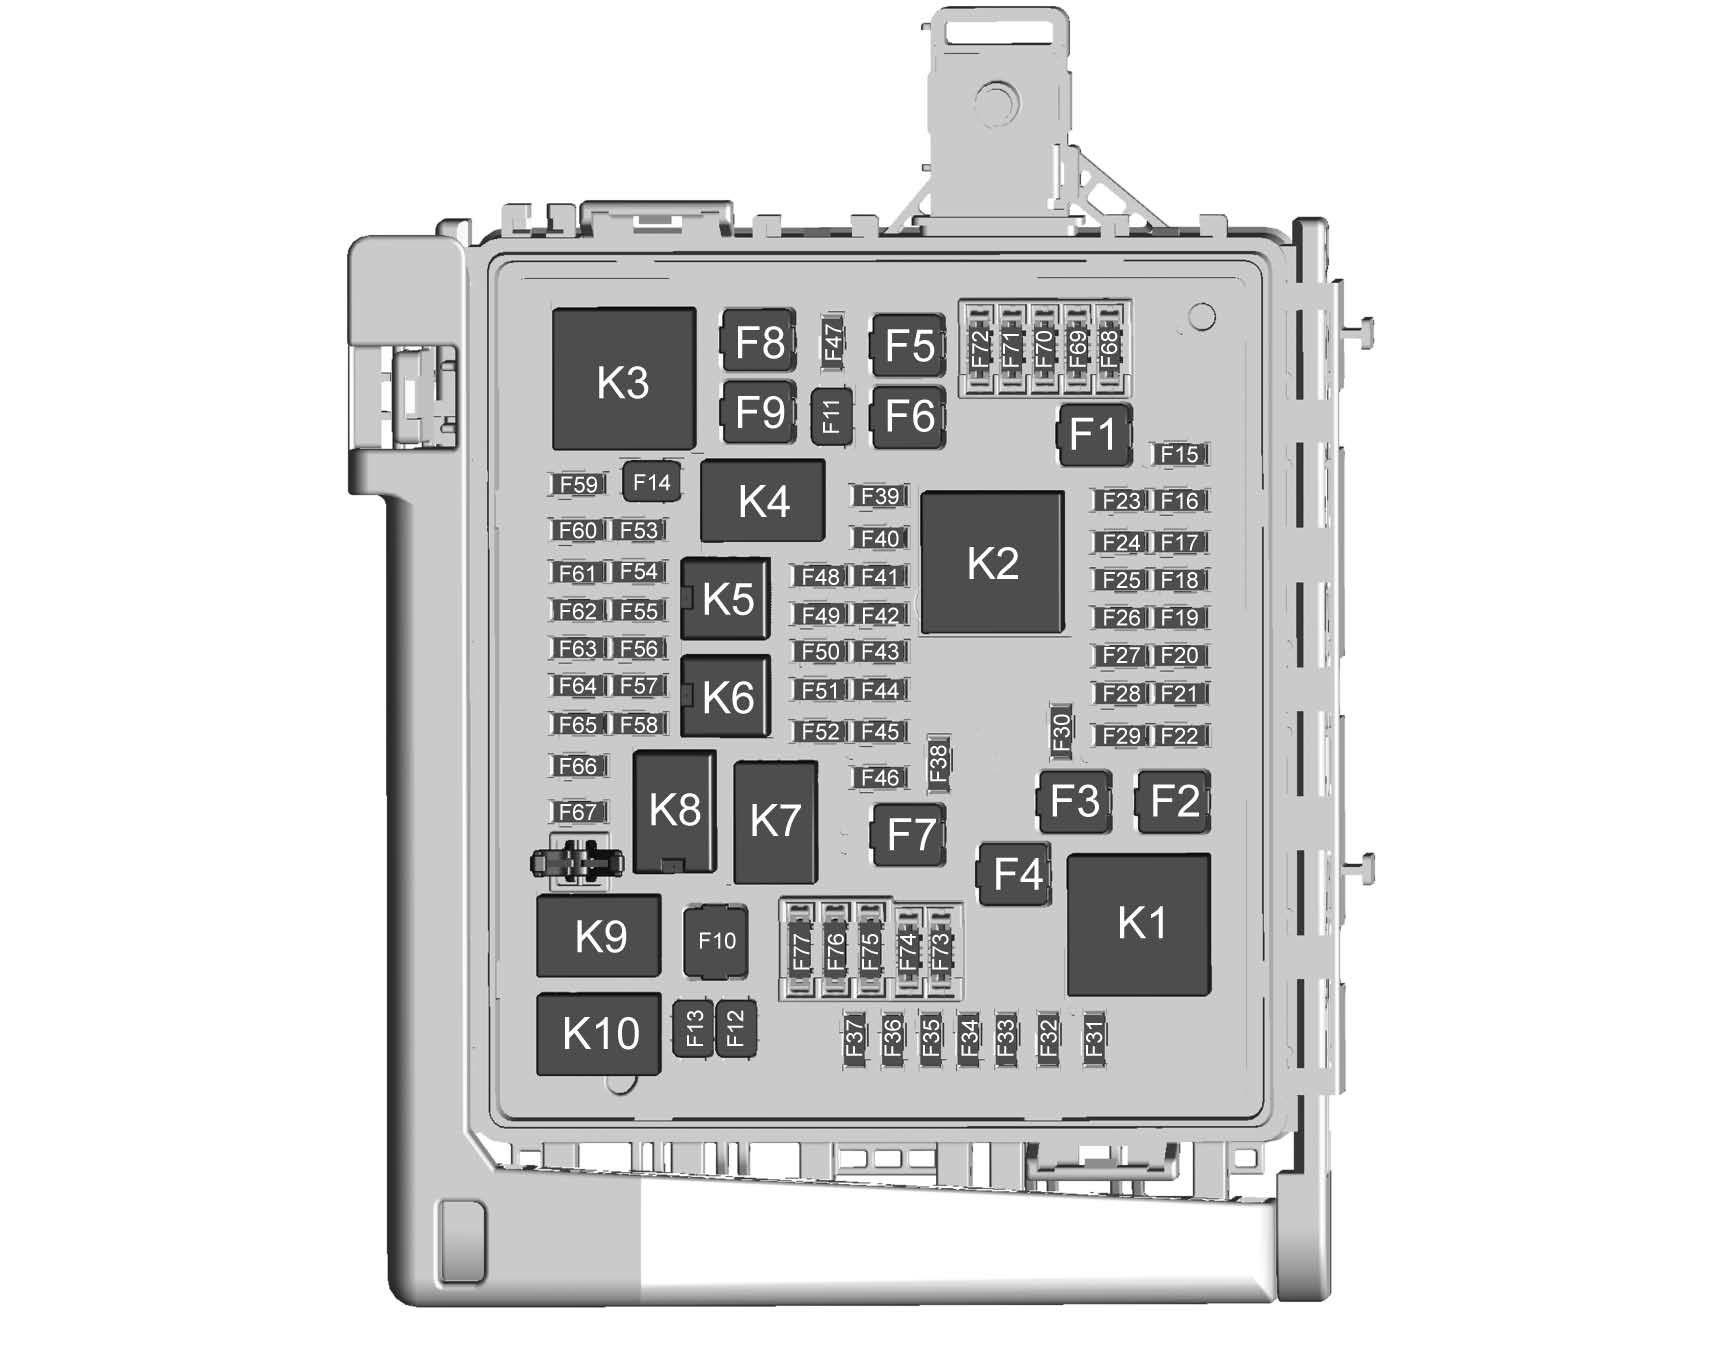 Cadillac Xt5  From 2017  - Fuse Box Diagram